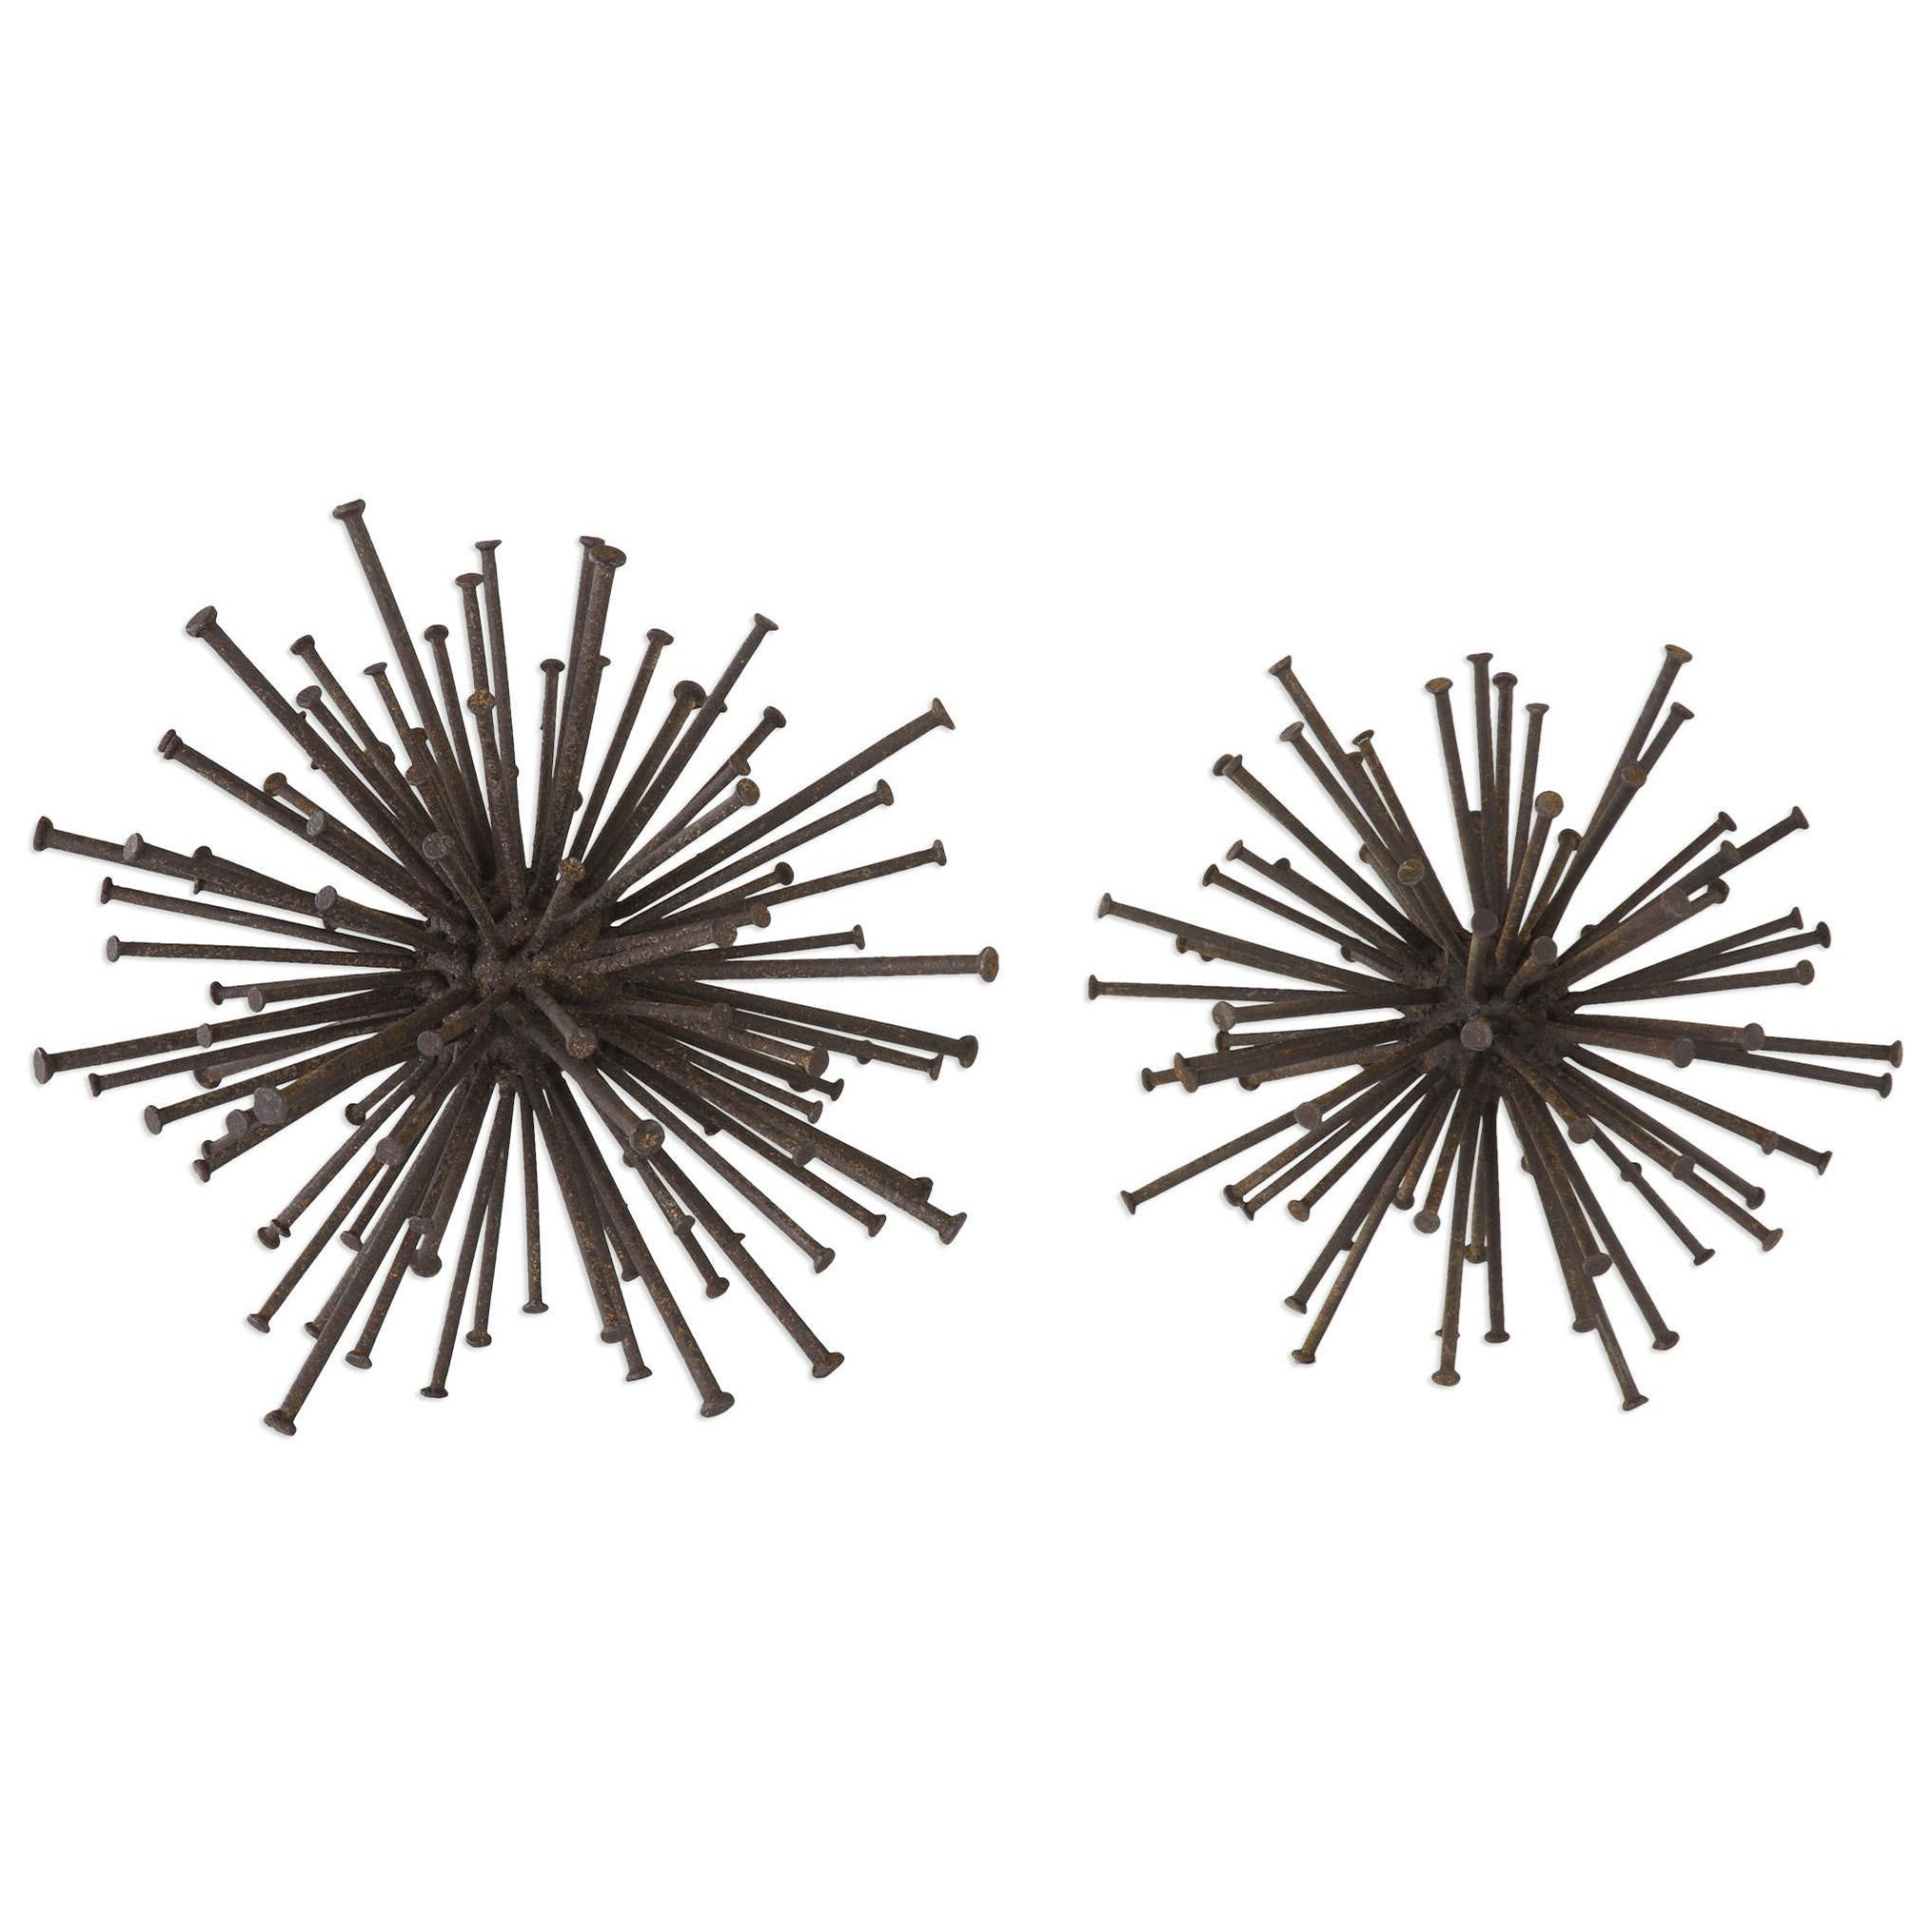 Accessories Aric Nail Spheres (Set of 2) by Uttermost at Dunk & Bright Furniture